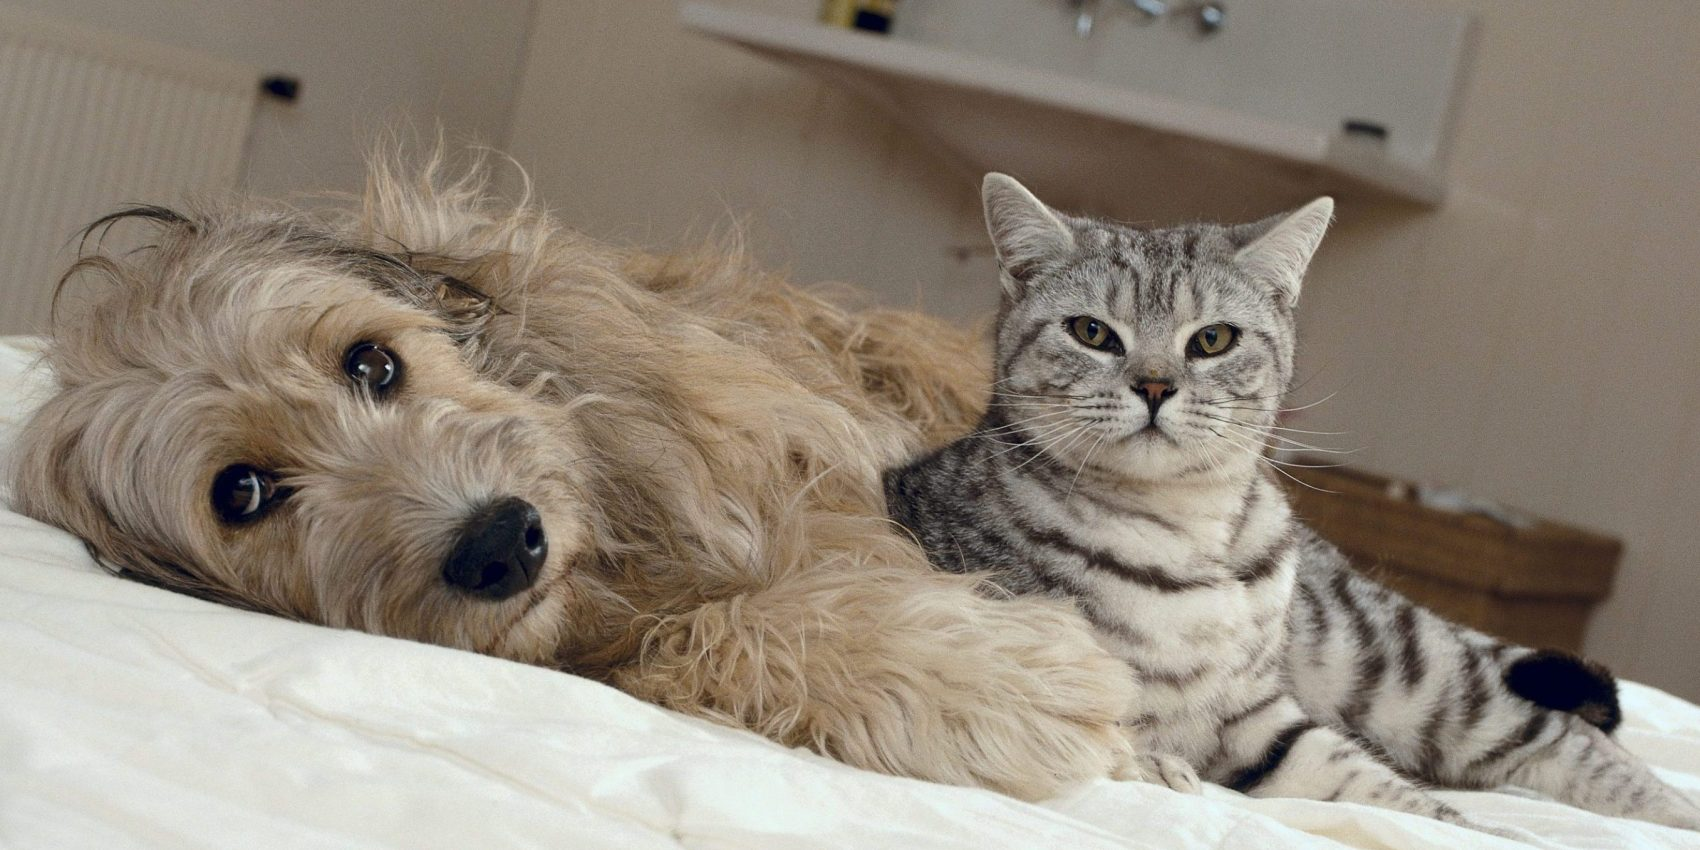 Caninsulin.com dog and cat on bed